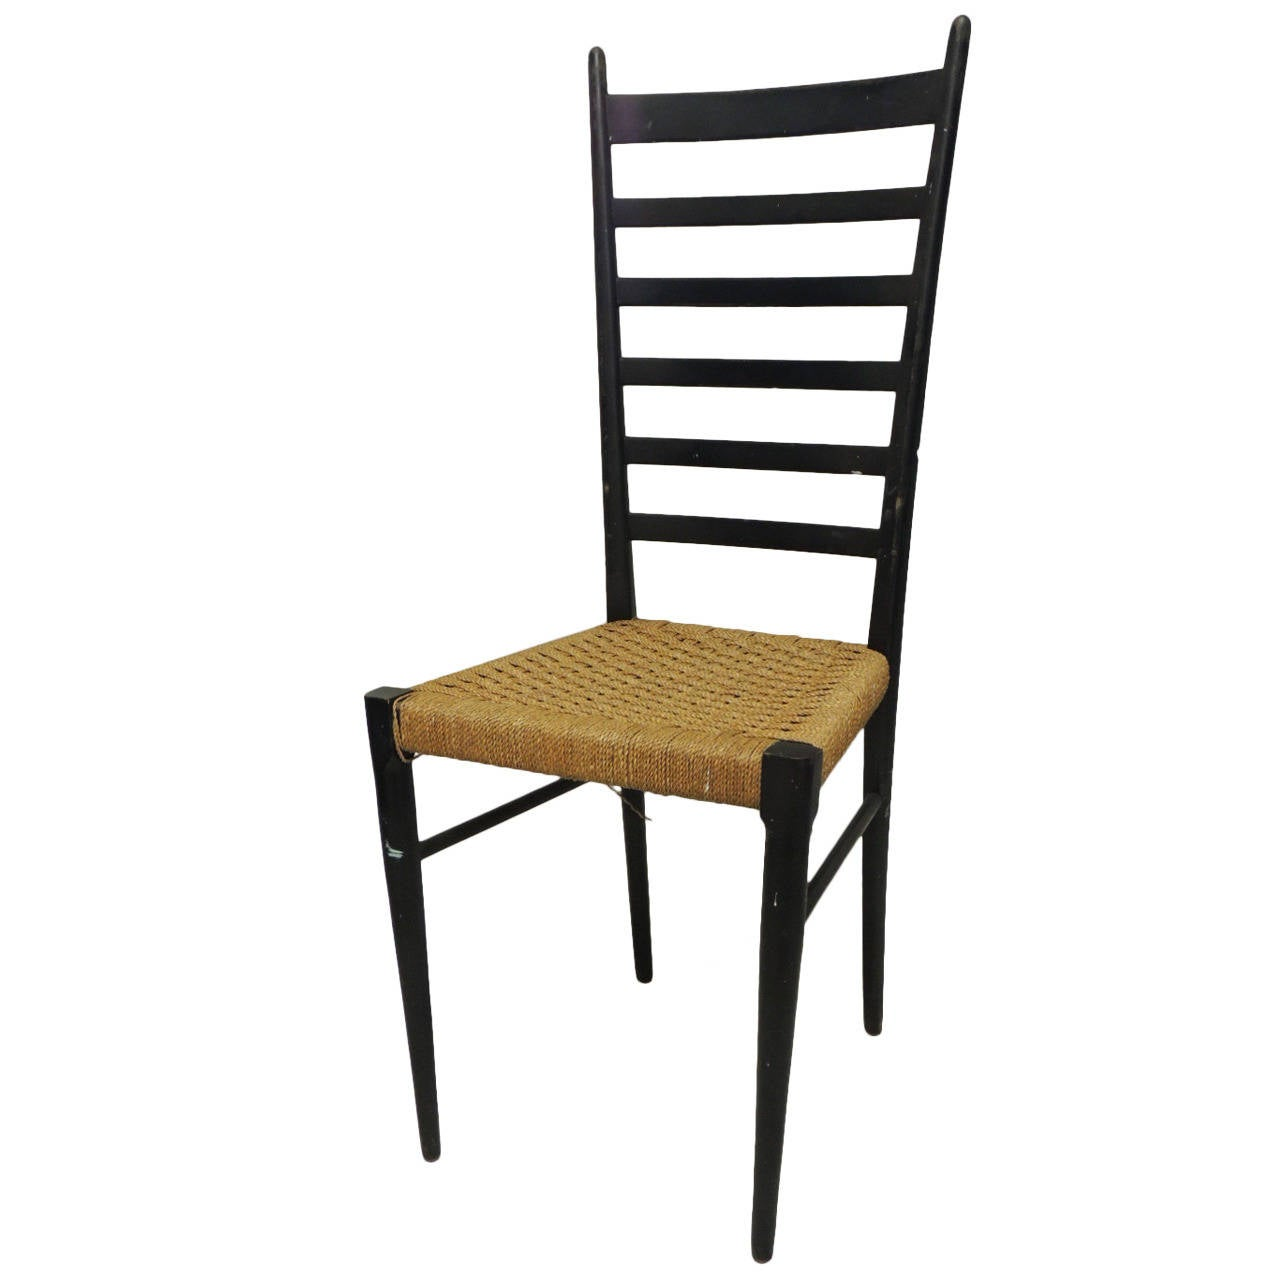 Tall Italian Ladder Back Chair with Rush Seat at 1stdibs : 1762152l from www.1stdibs.com size 1280 x 1280 jpeg 60kB